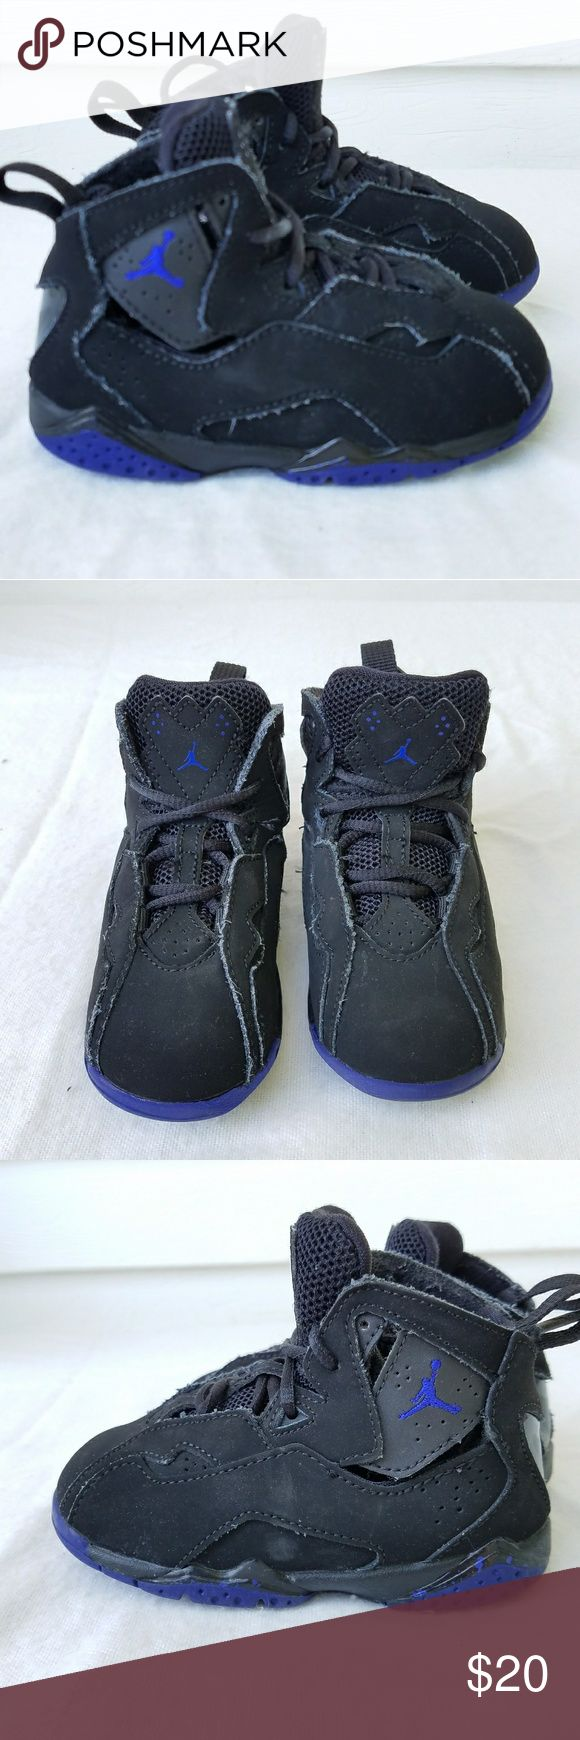 Baby Jordan True Flight Black Toddler Size 7 toddler.  Pretty good condition,  some minor wear. Black and Purple. Jordan Shoes Sneakers